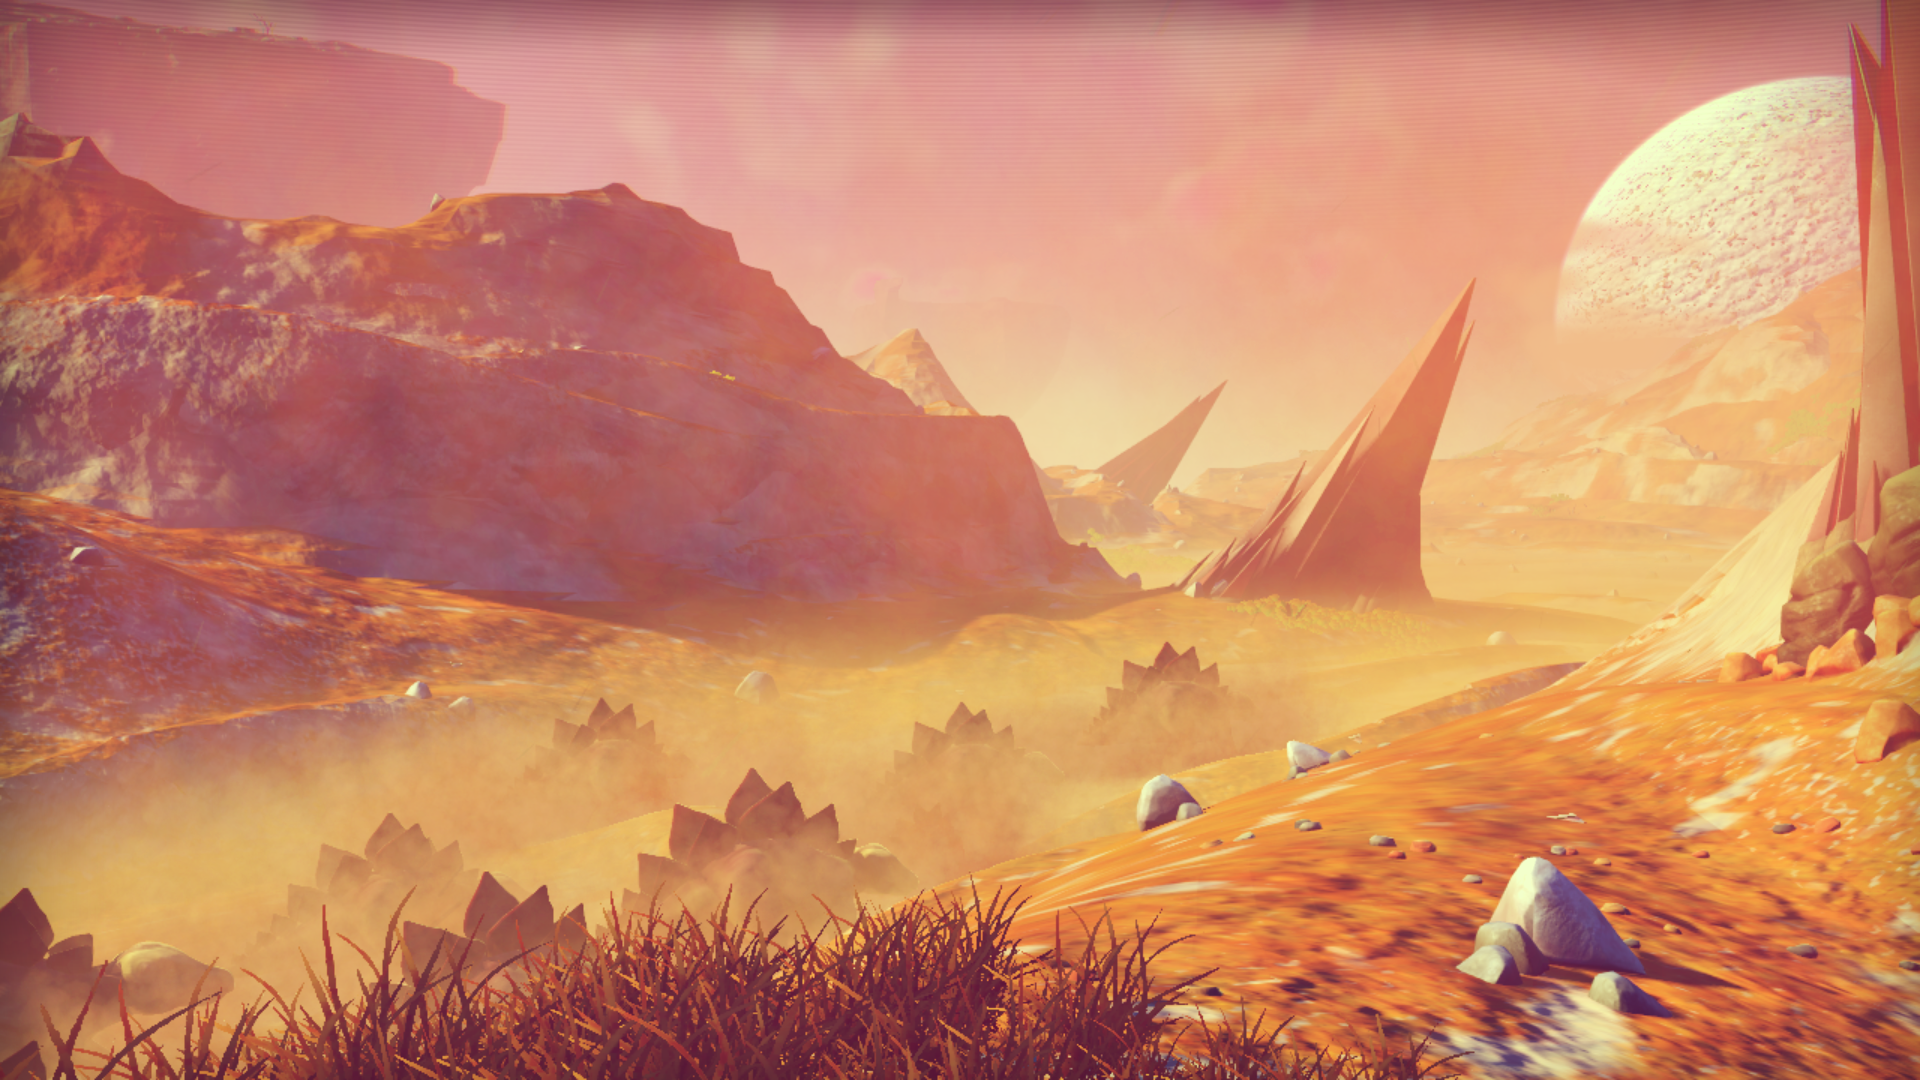 Artistry in Games Creature No Man's Sky: Looking Deeper At One Of E3's Biggest Hits Features